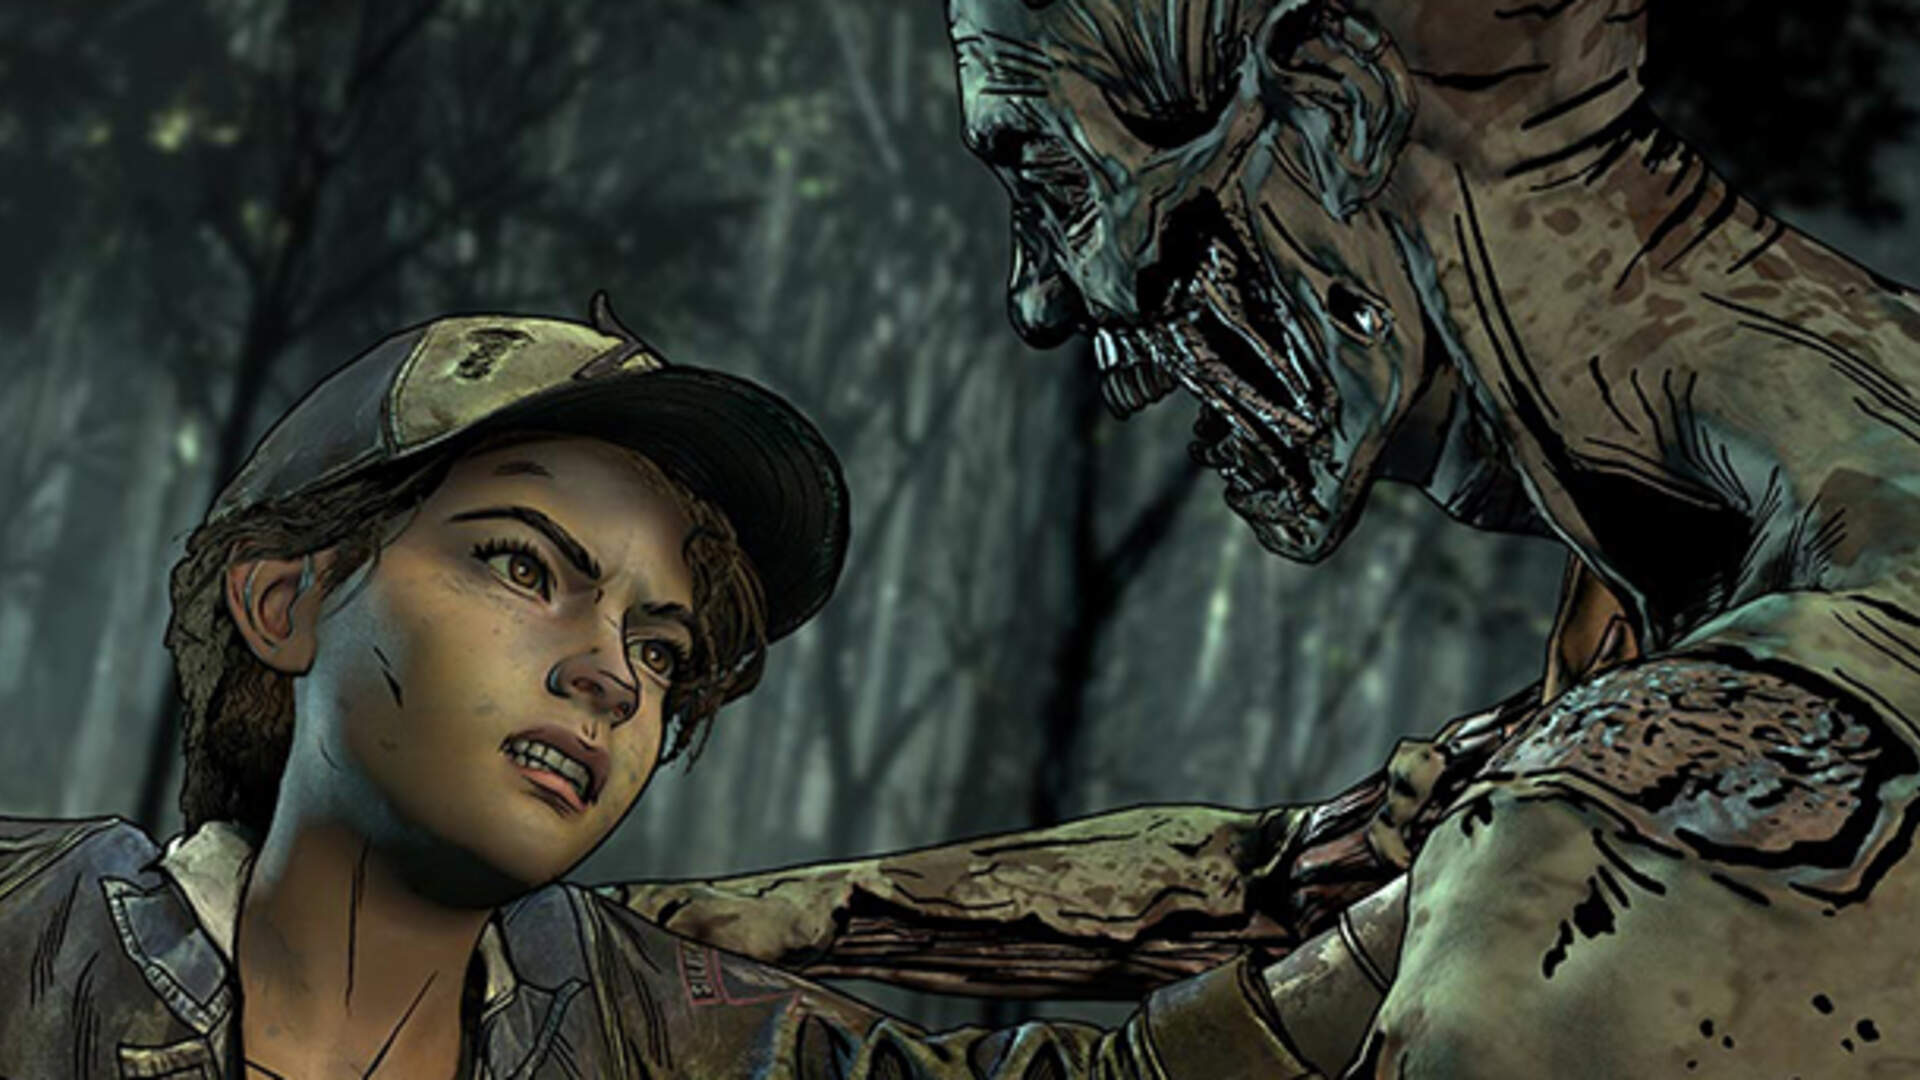 The Walking Dead: The Final Season Lives, Episode 3 Gets Release Date